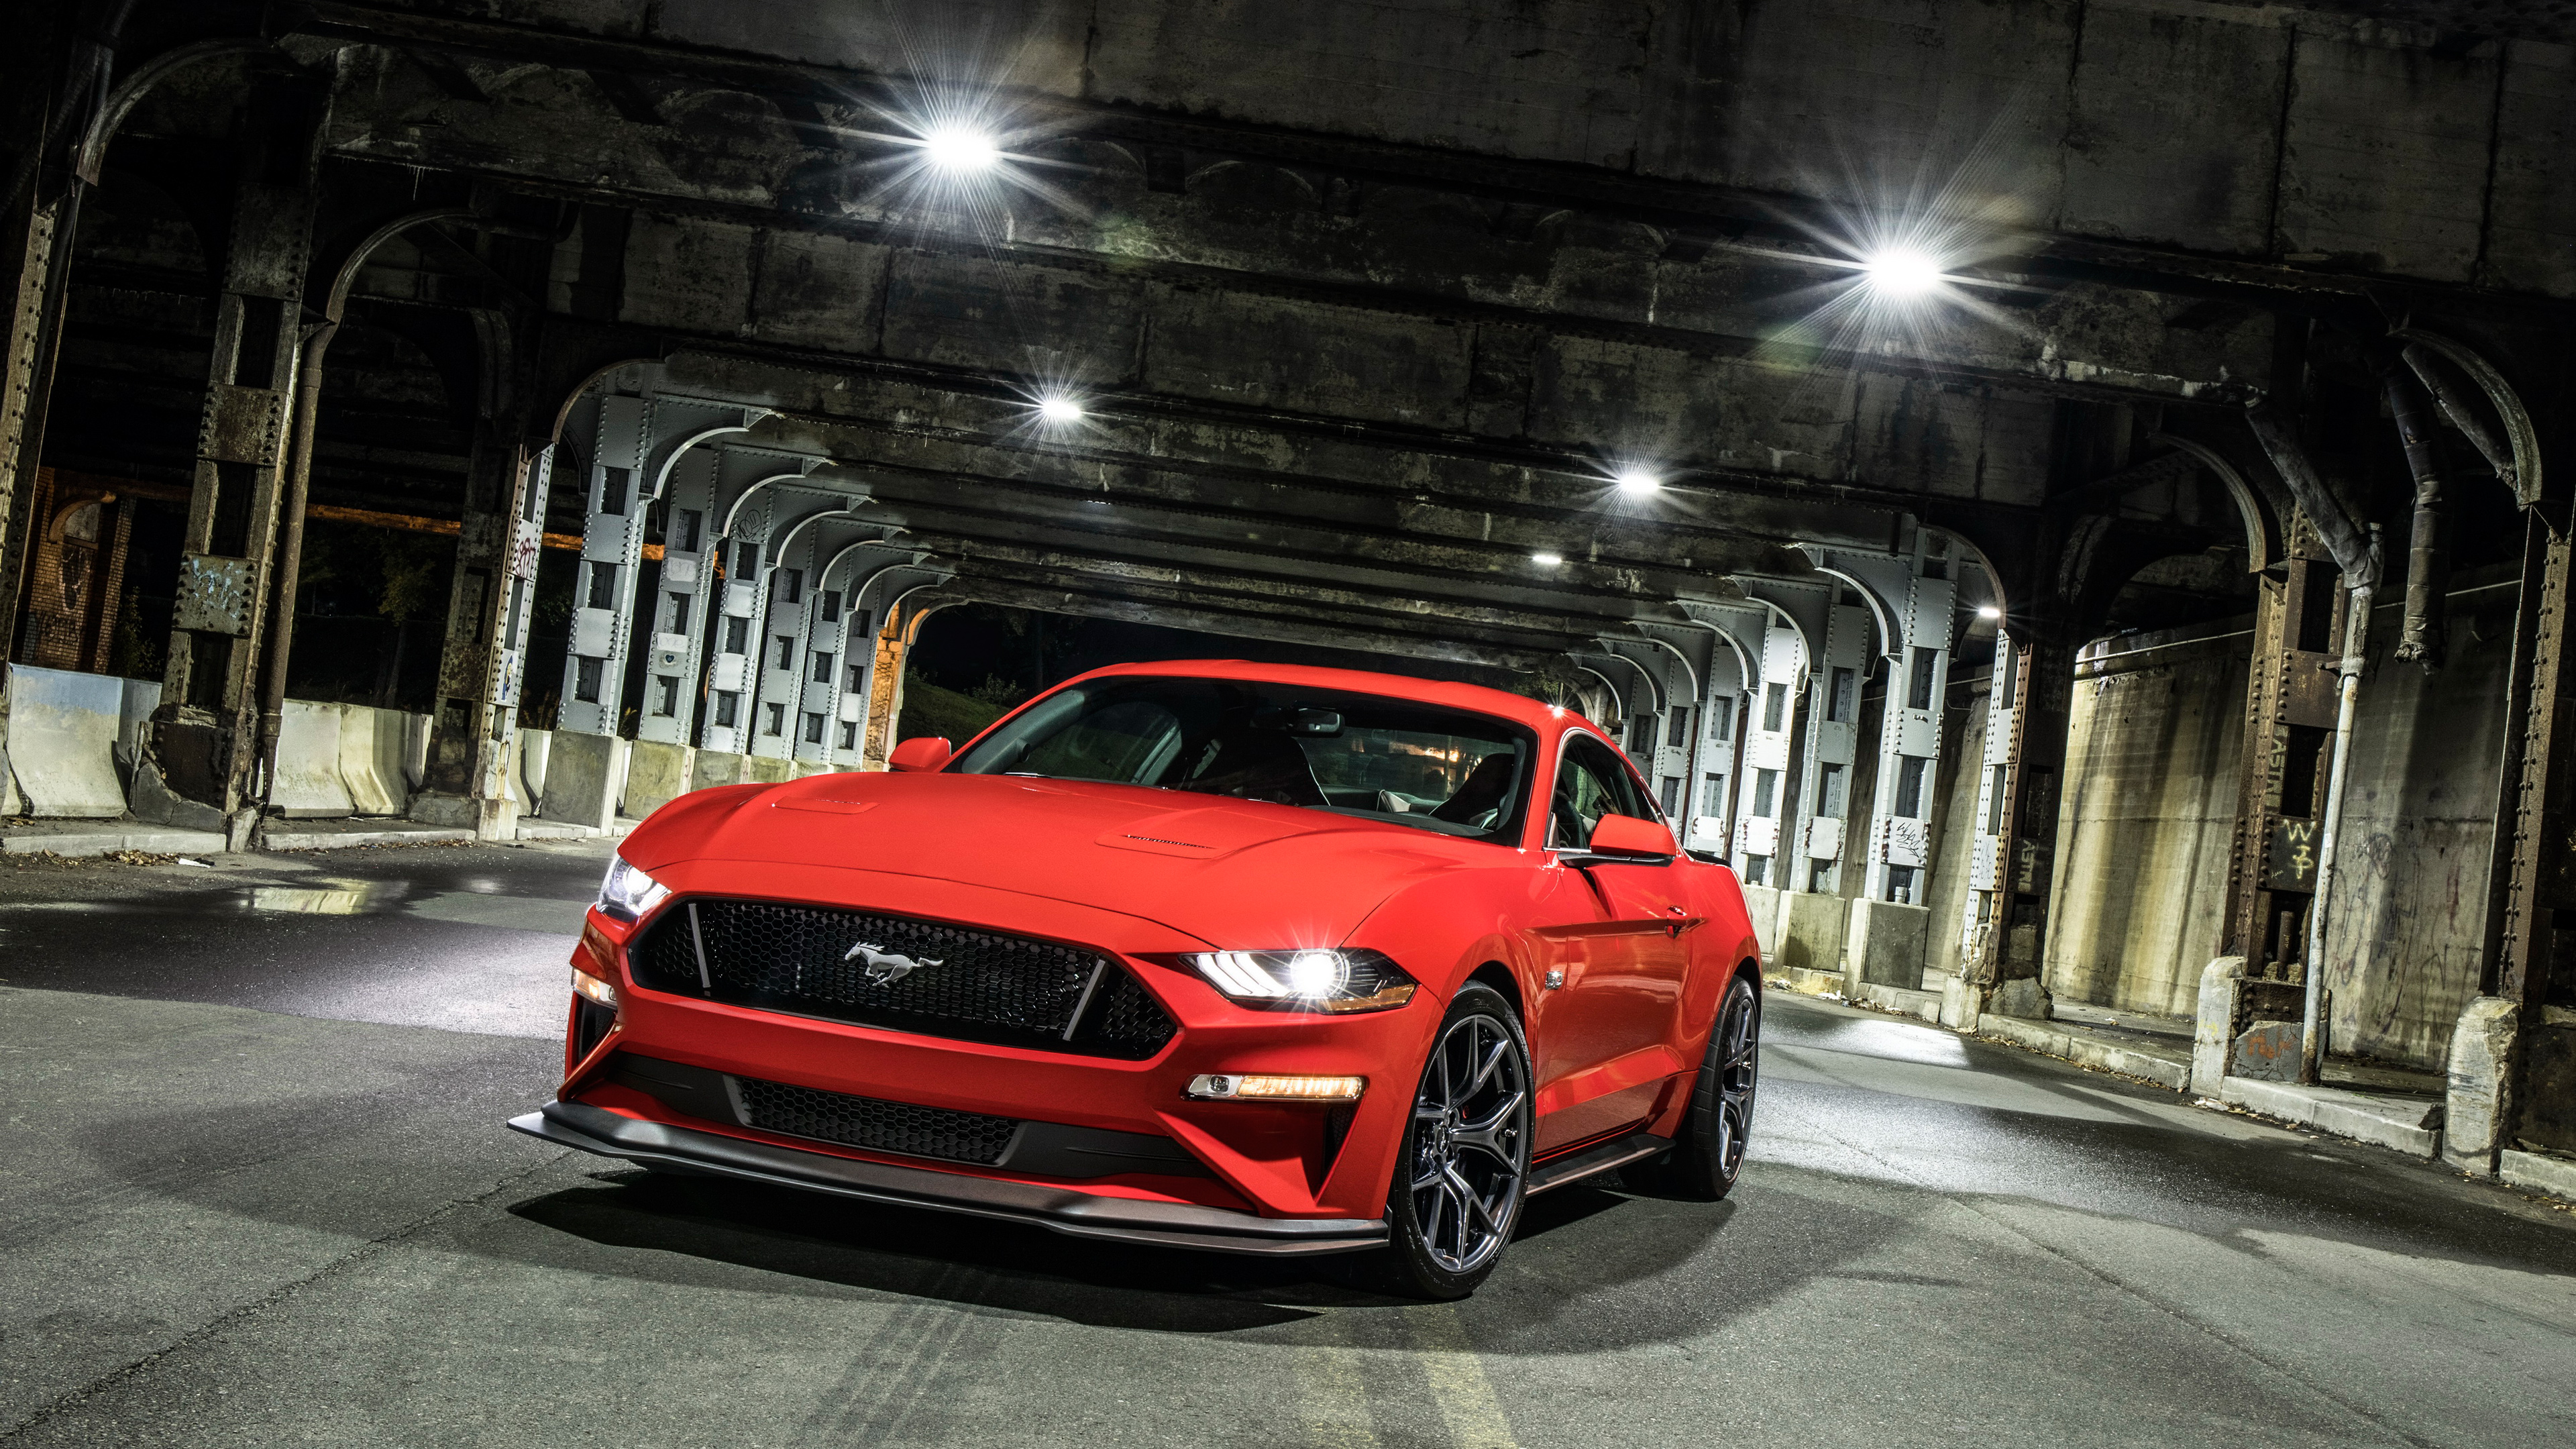 2018 Ford Mustang Gt Level 2 Performance Pack 4k 6